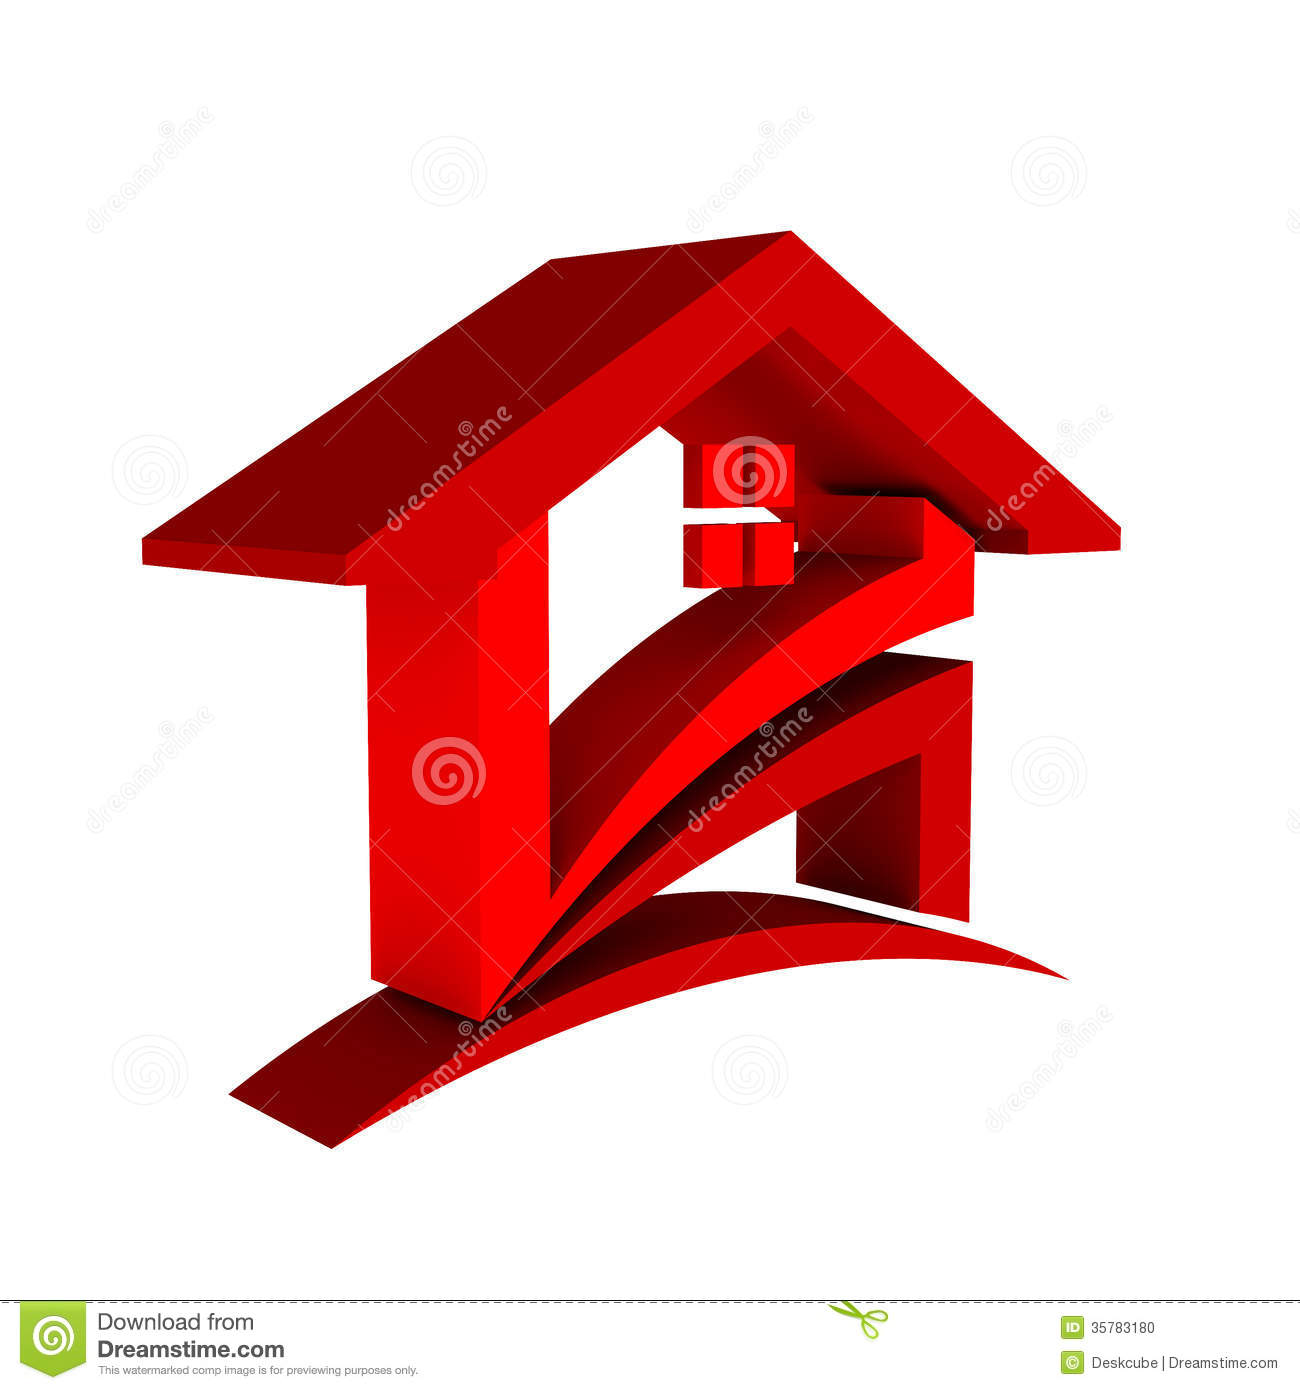 3D Red House With Swoosh Logo Icon Royalty Free Stock Photos.